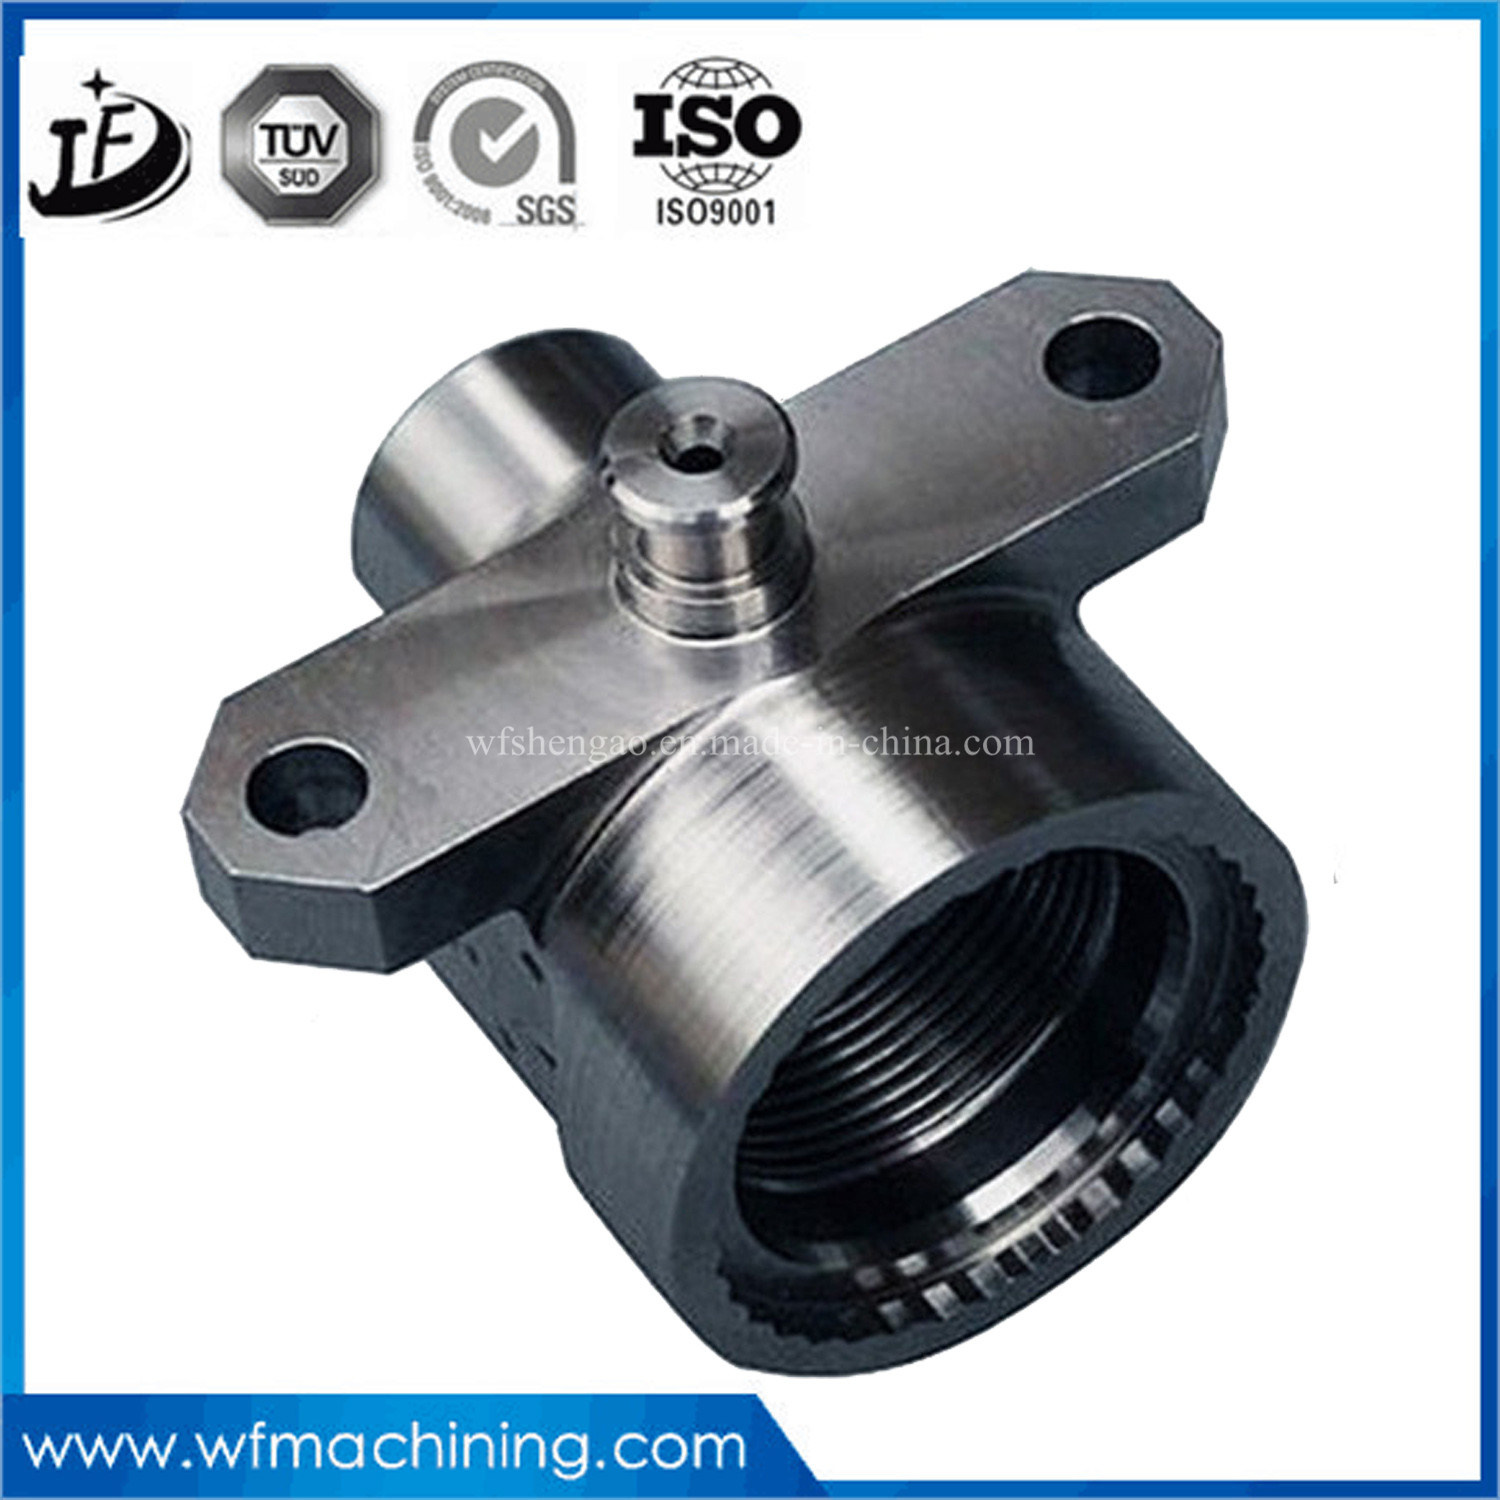 OEM Manufacturer CNC Machining OEM Service/Precision CNC Machining Part/CNC Machining for Construction Machinery Spare Parts